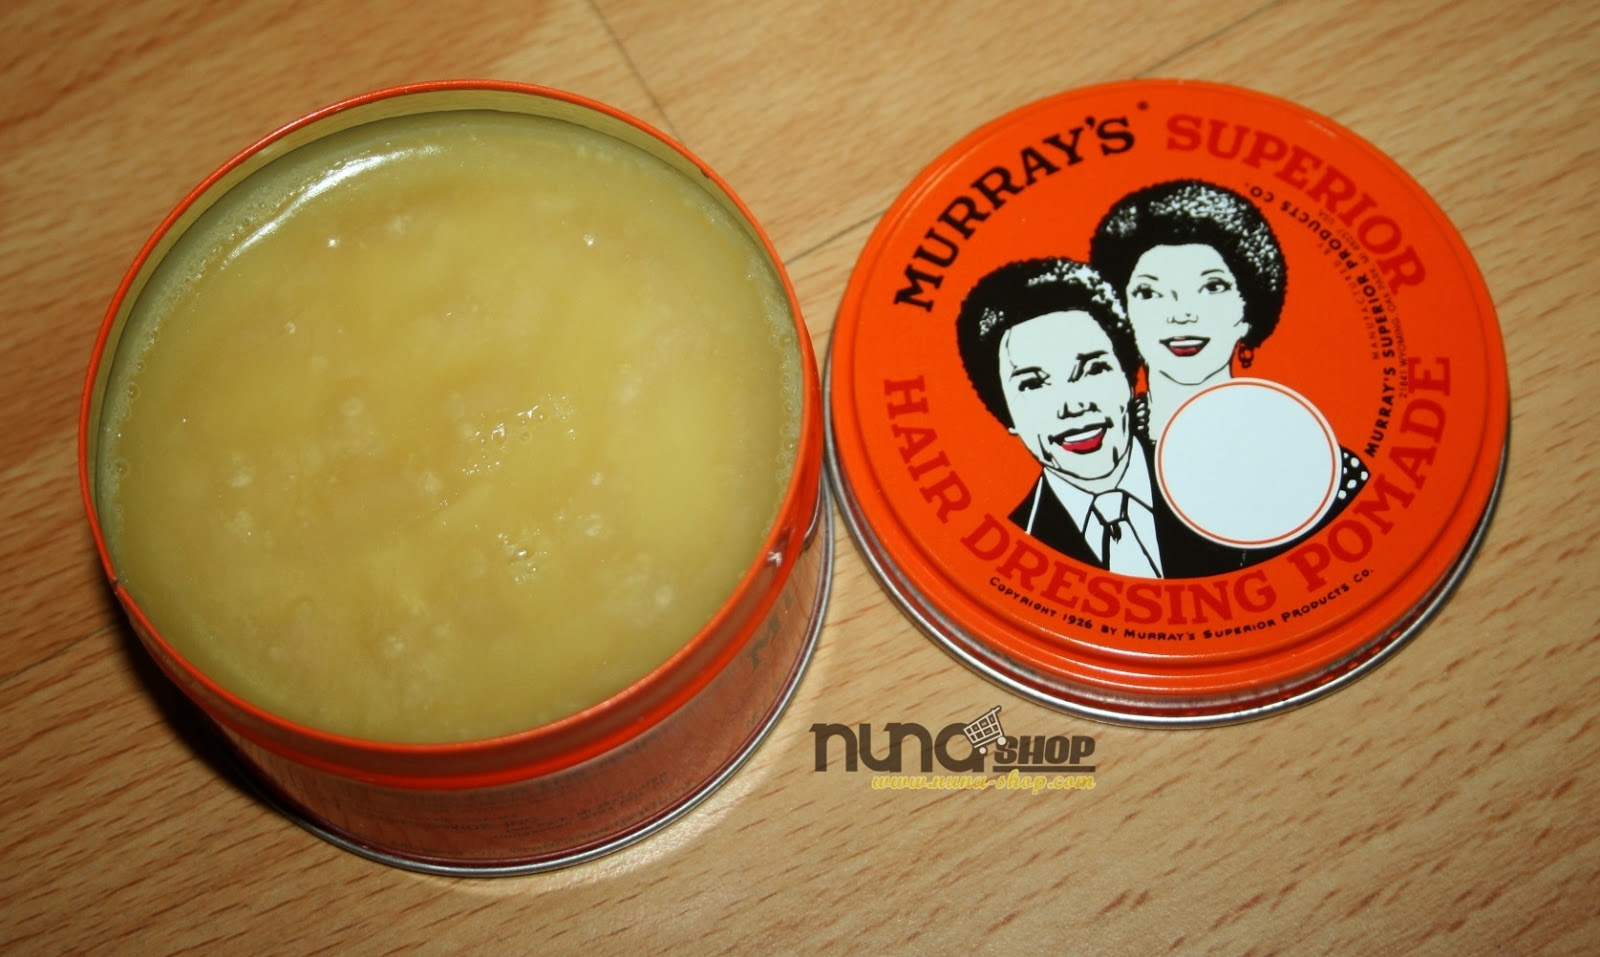 Murray's Superior Pomade